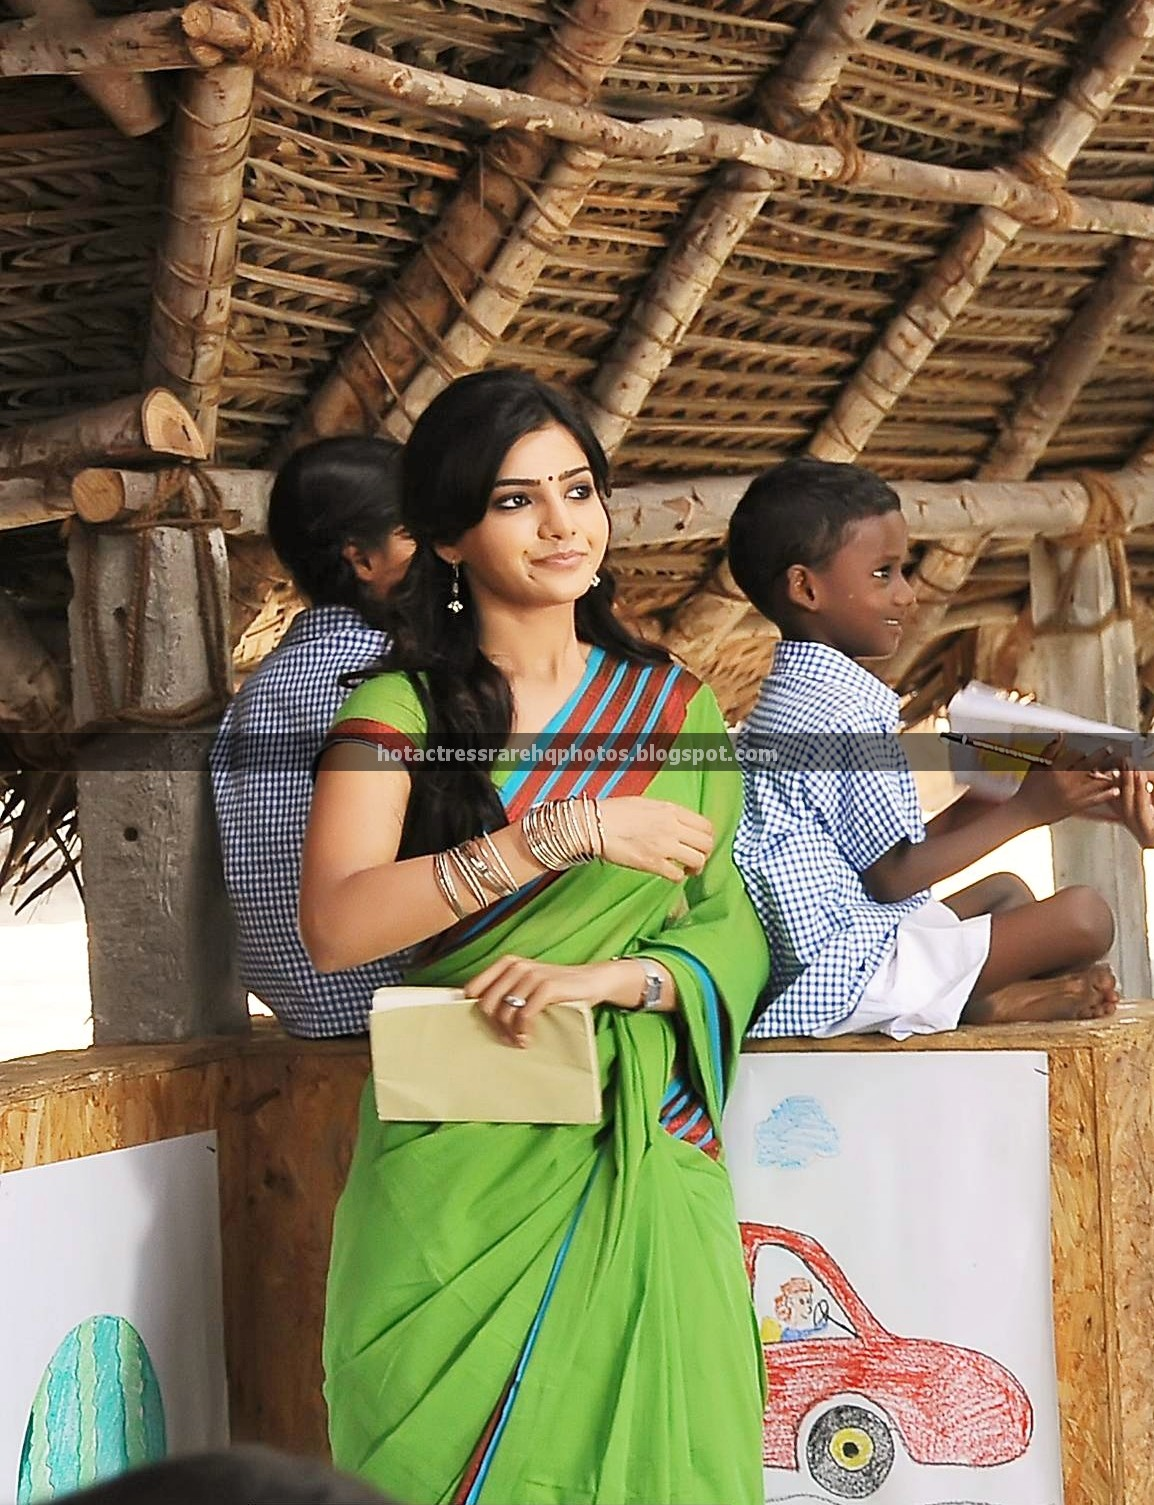 http://4.bp.blogspot.com/-fQtn2ZW7Pw0/UNgzXtZvFmI/AAAAAAAAFgw/lUGvgcVOvCw/s1600/Samantha_Ruth_Prabhu_Unseen_Color_Saree_Photos_from_NEP_1.jpg